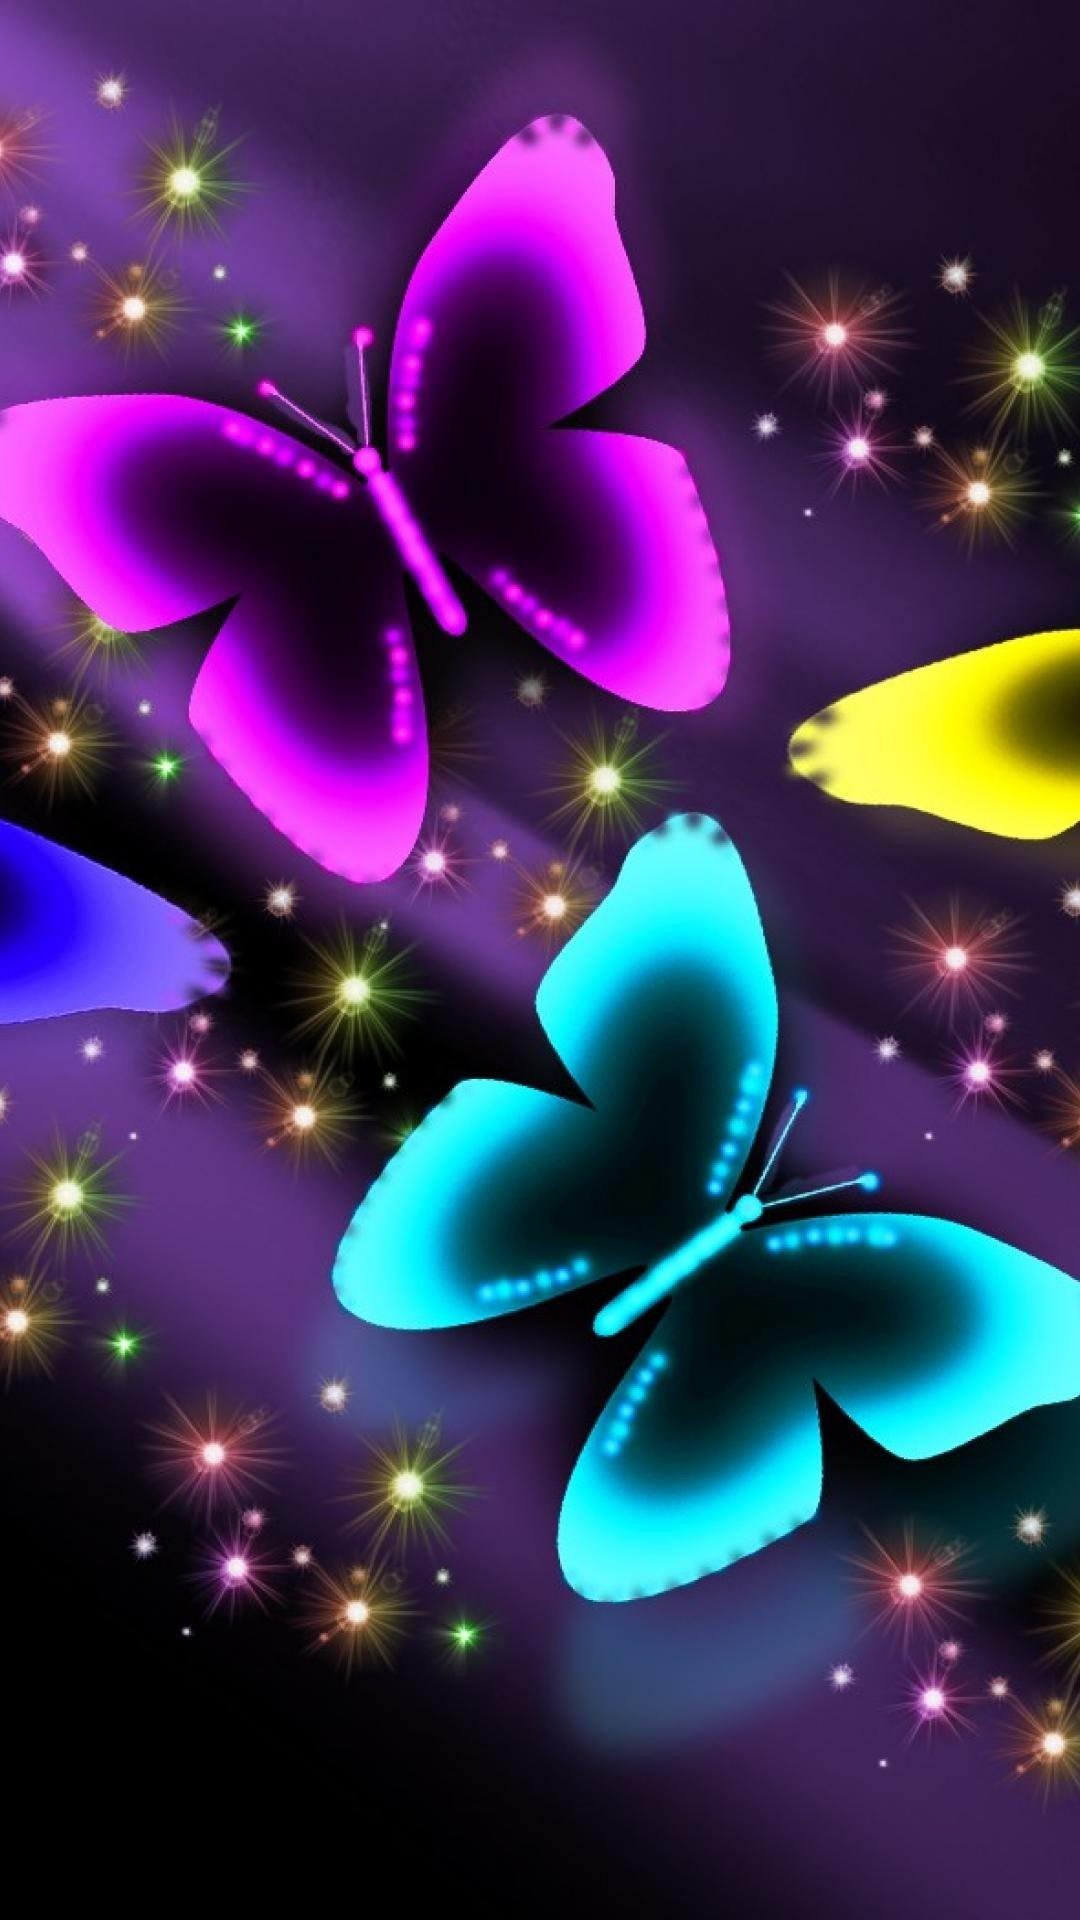 Neon Wallpapers For Mobile Neon Butterfly On Black Background 3238269 Hd Wallpaper Backgrounds Download